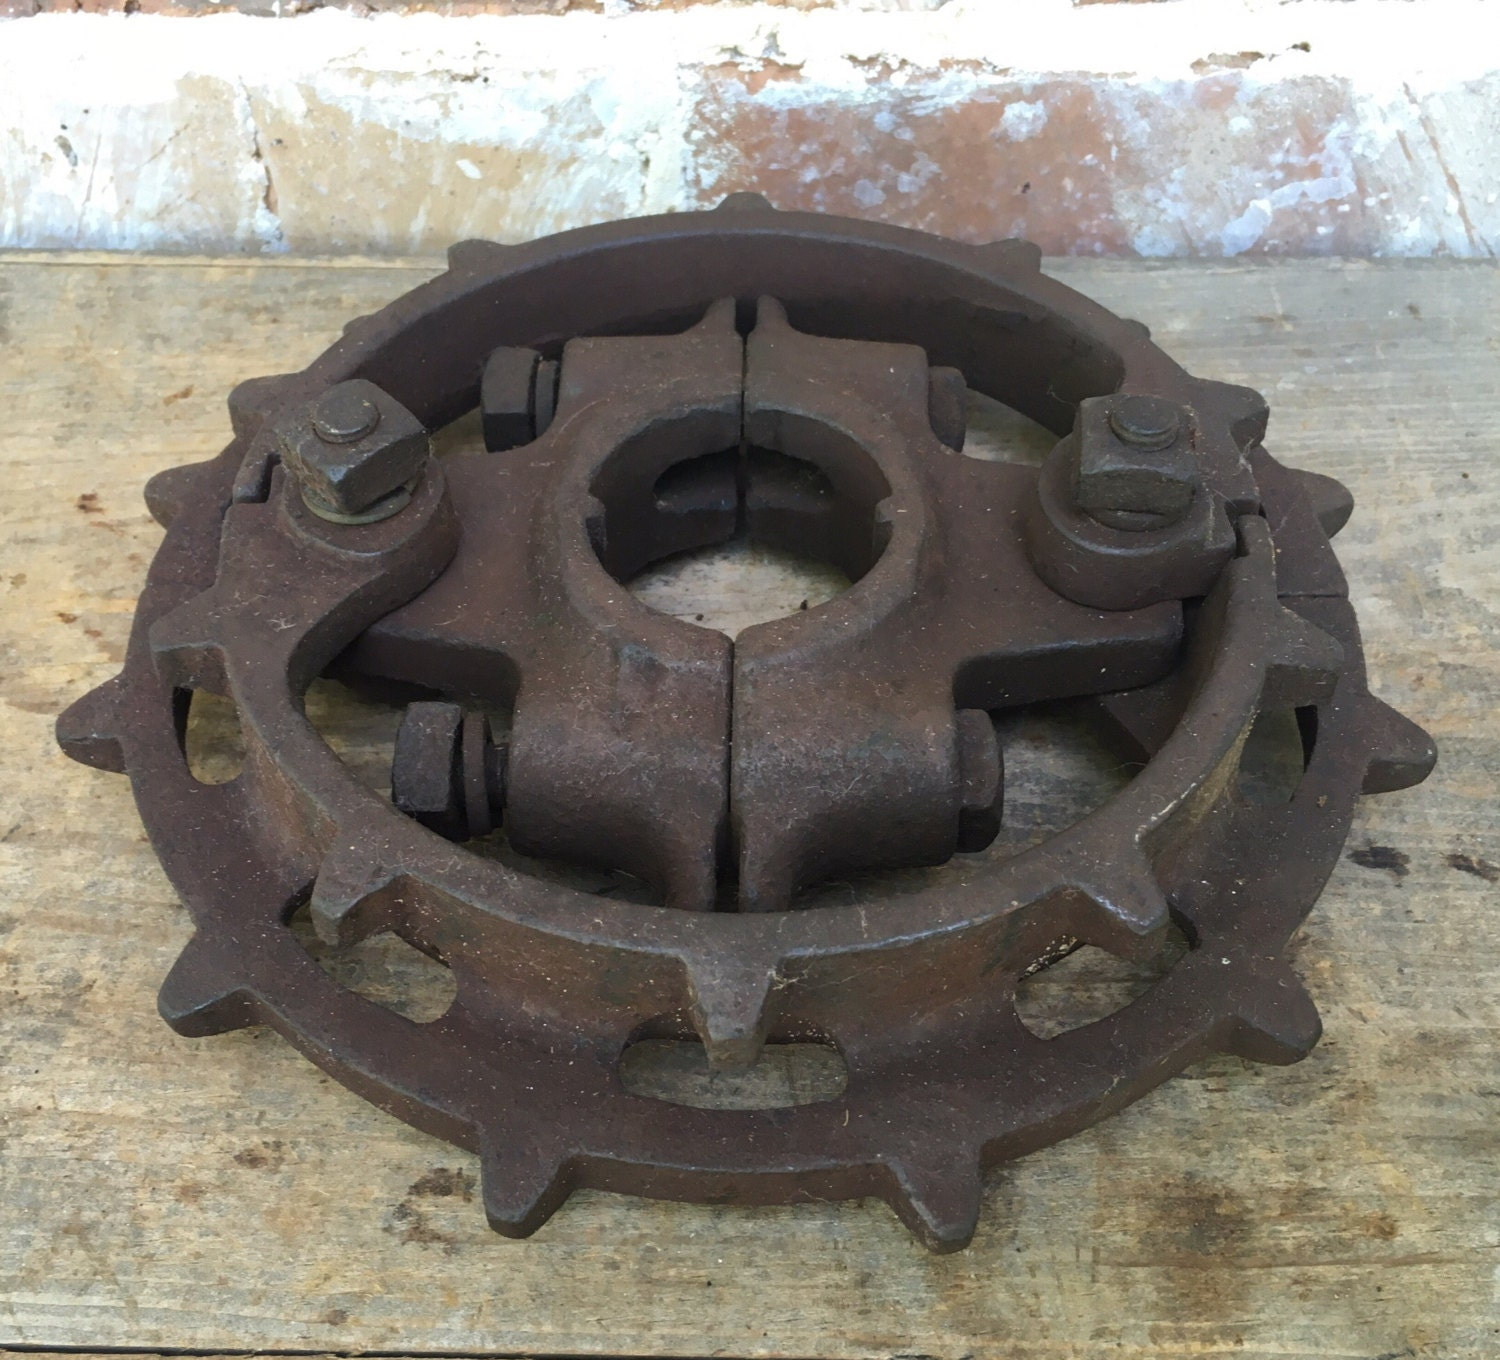 Cast Iron Wheels And Gears : Vintage large cast iron metal pulley gear wheel industrial